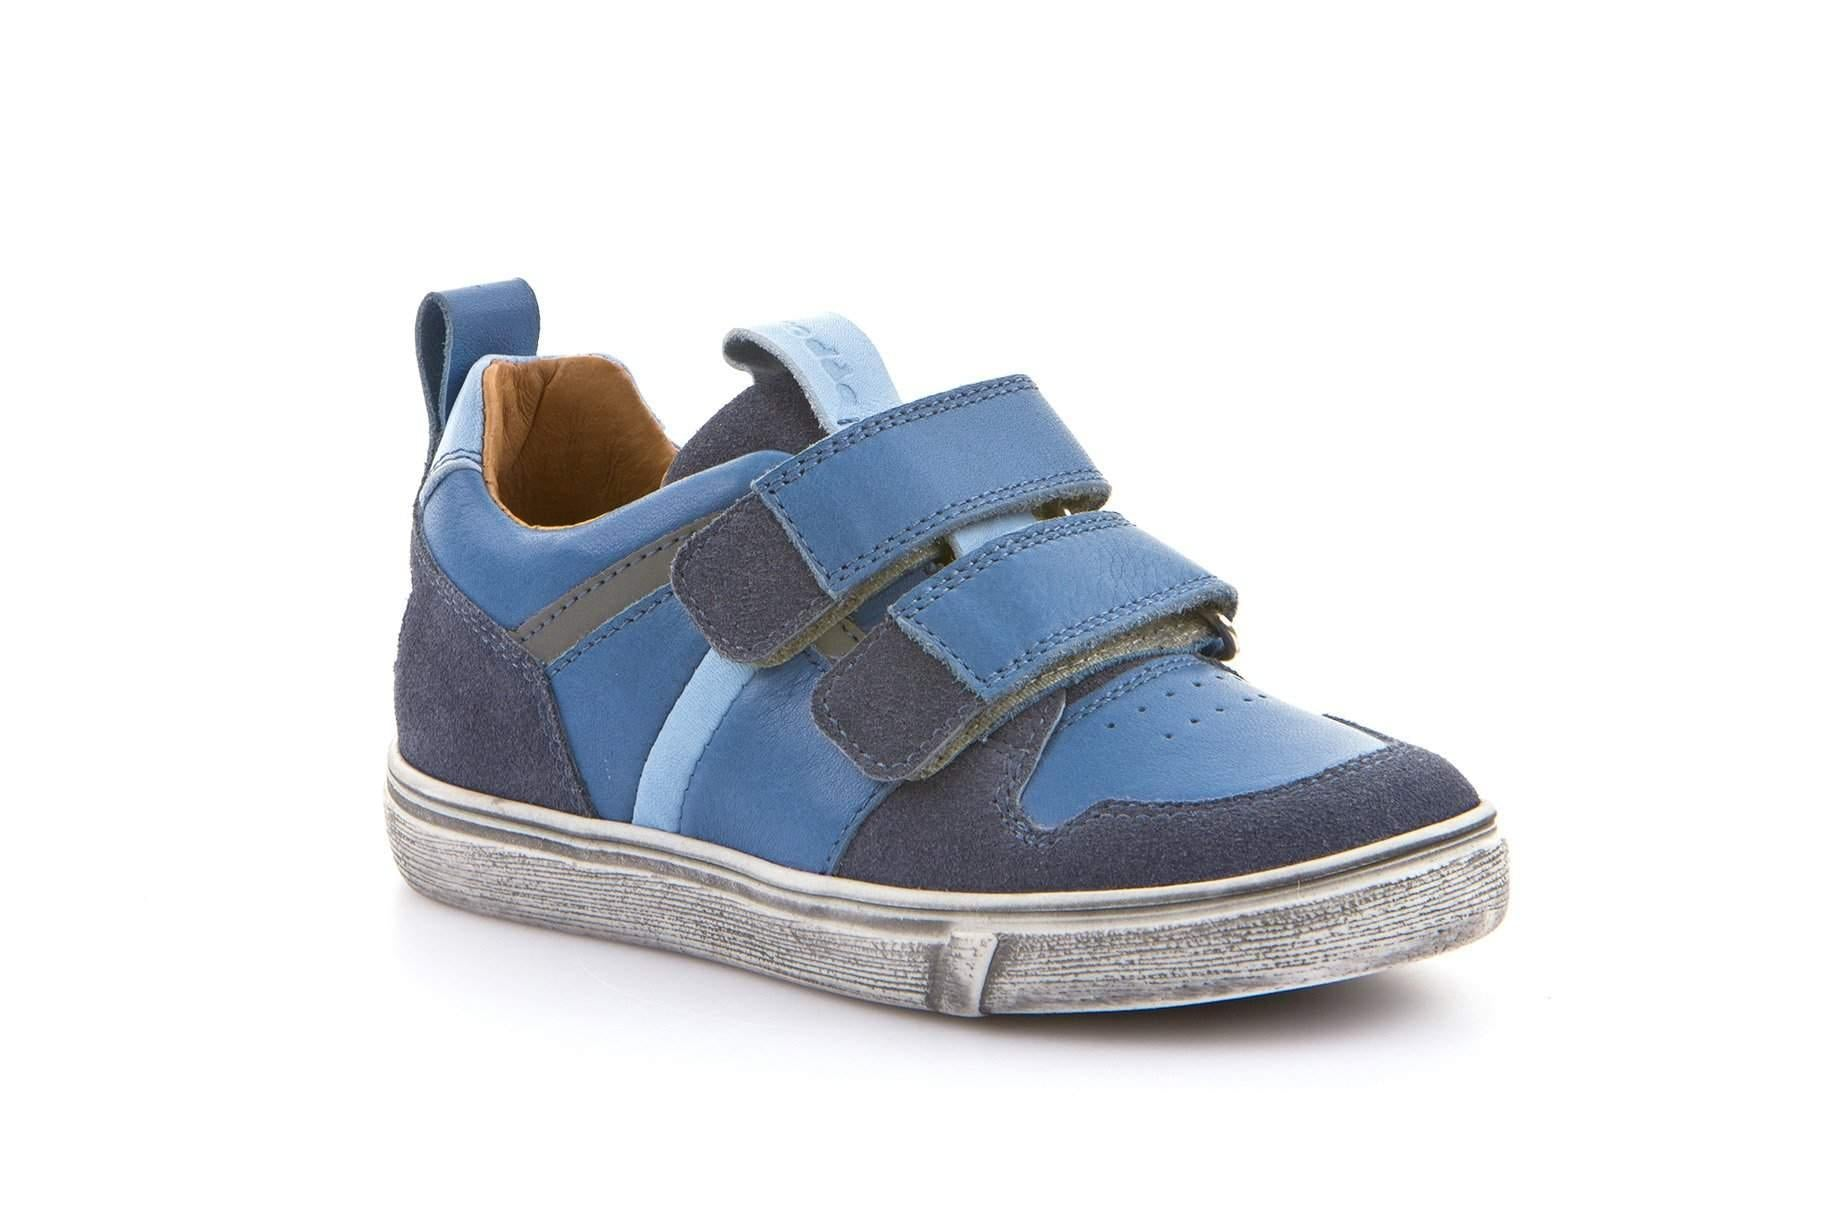 Froddo/G3130124-1/Denim/Boys Leather Shoes /Little Kid - ShoeKid.ca